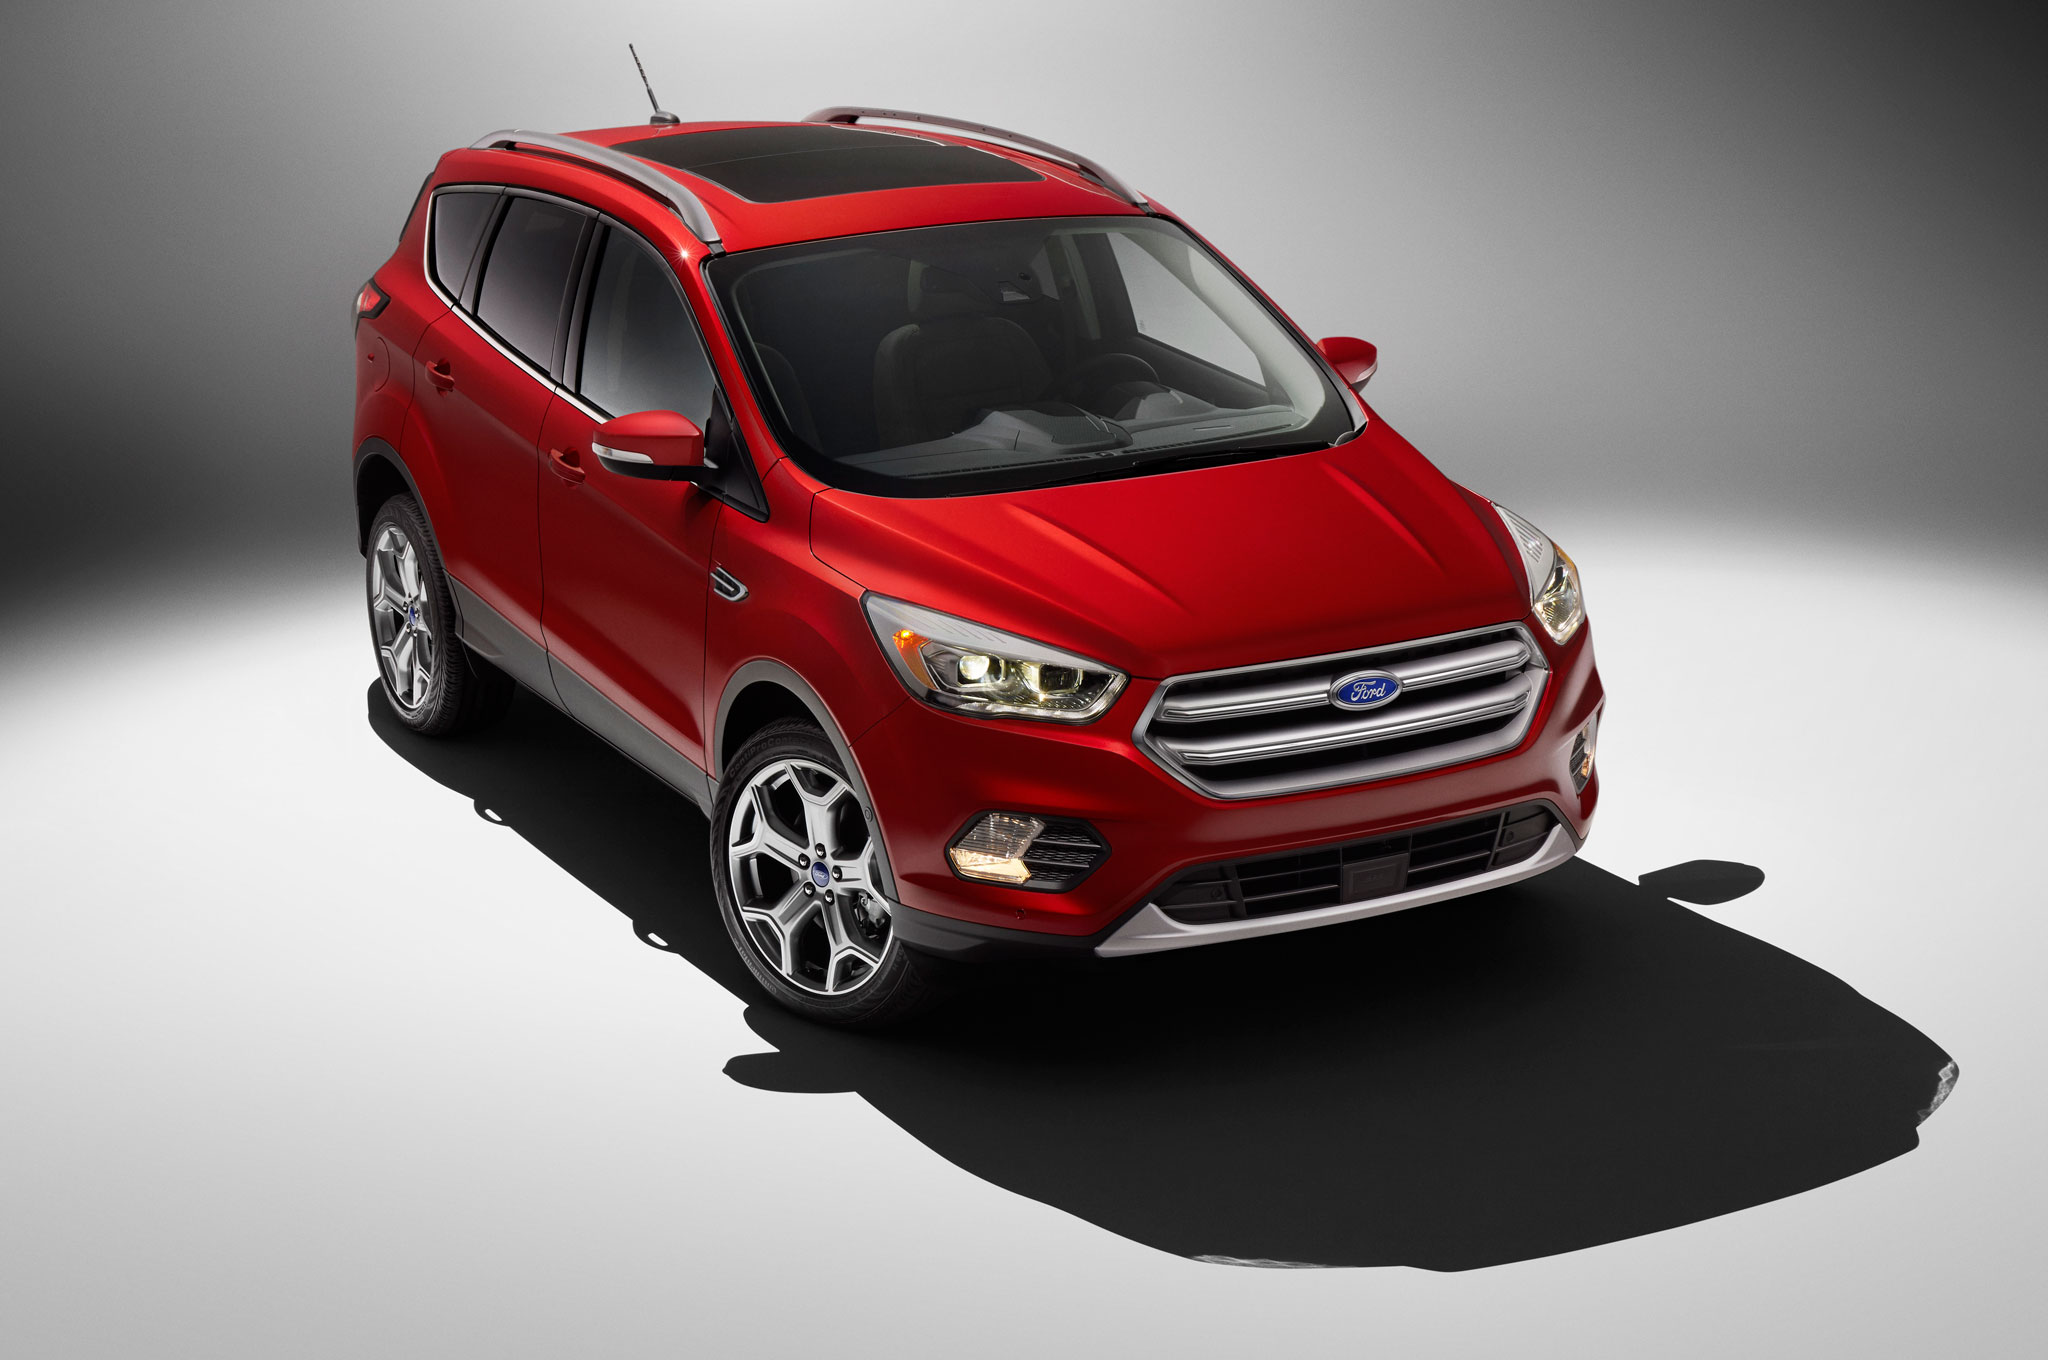 Usa new ford escape comes with fordpass sync connect allowing drivers to lock unlock locate their car